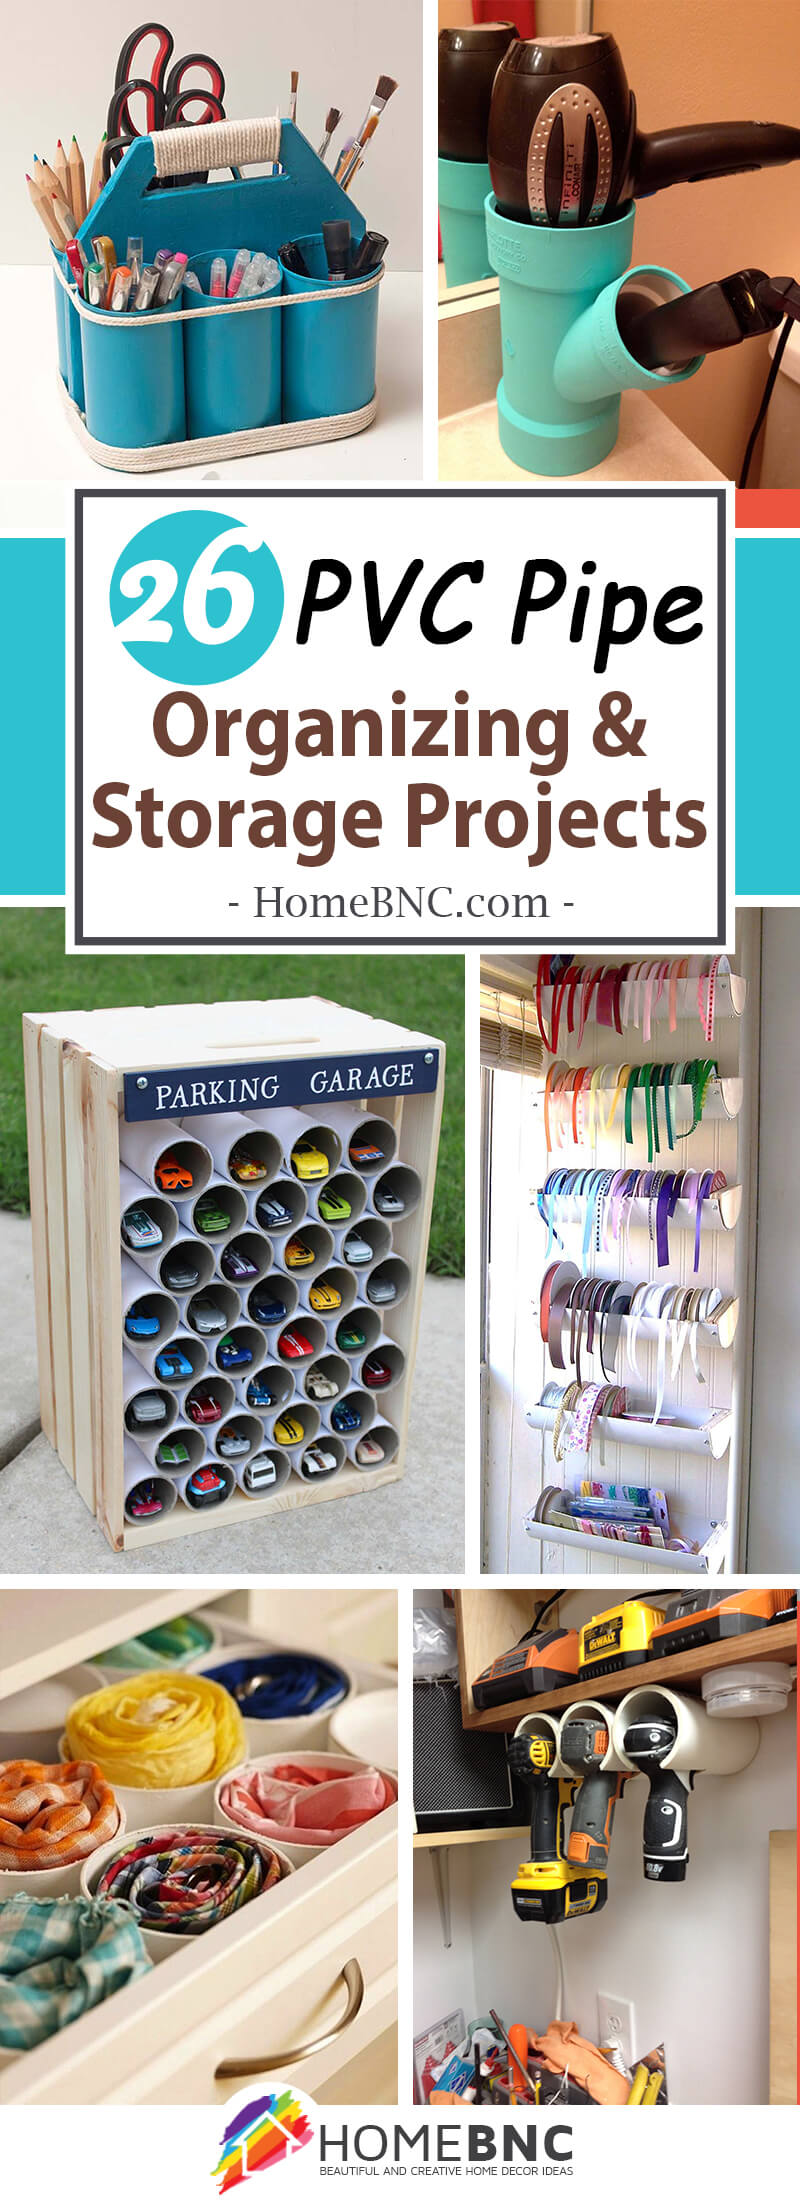 PVC Pipe Organizing and Storage Ideas